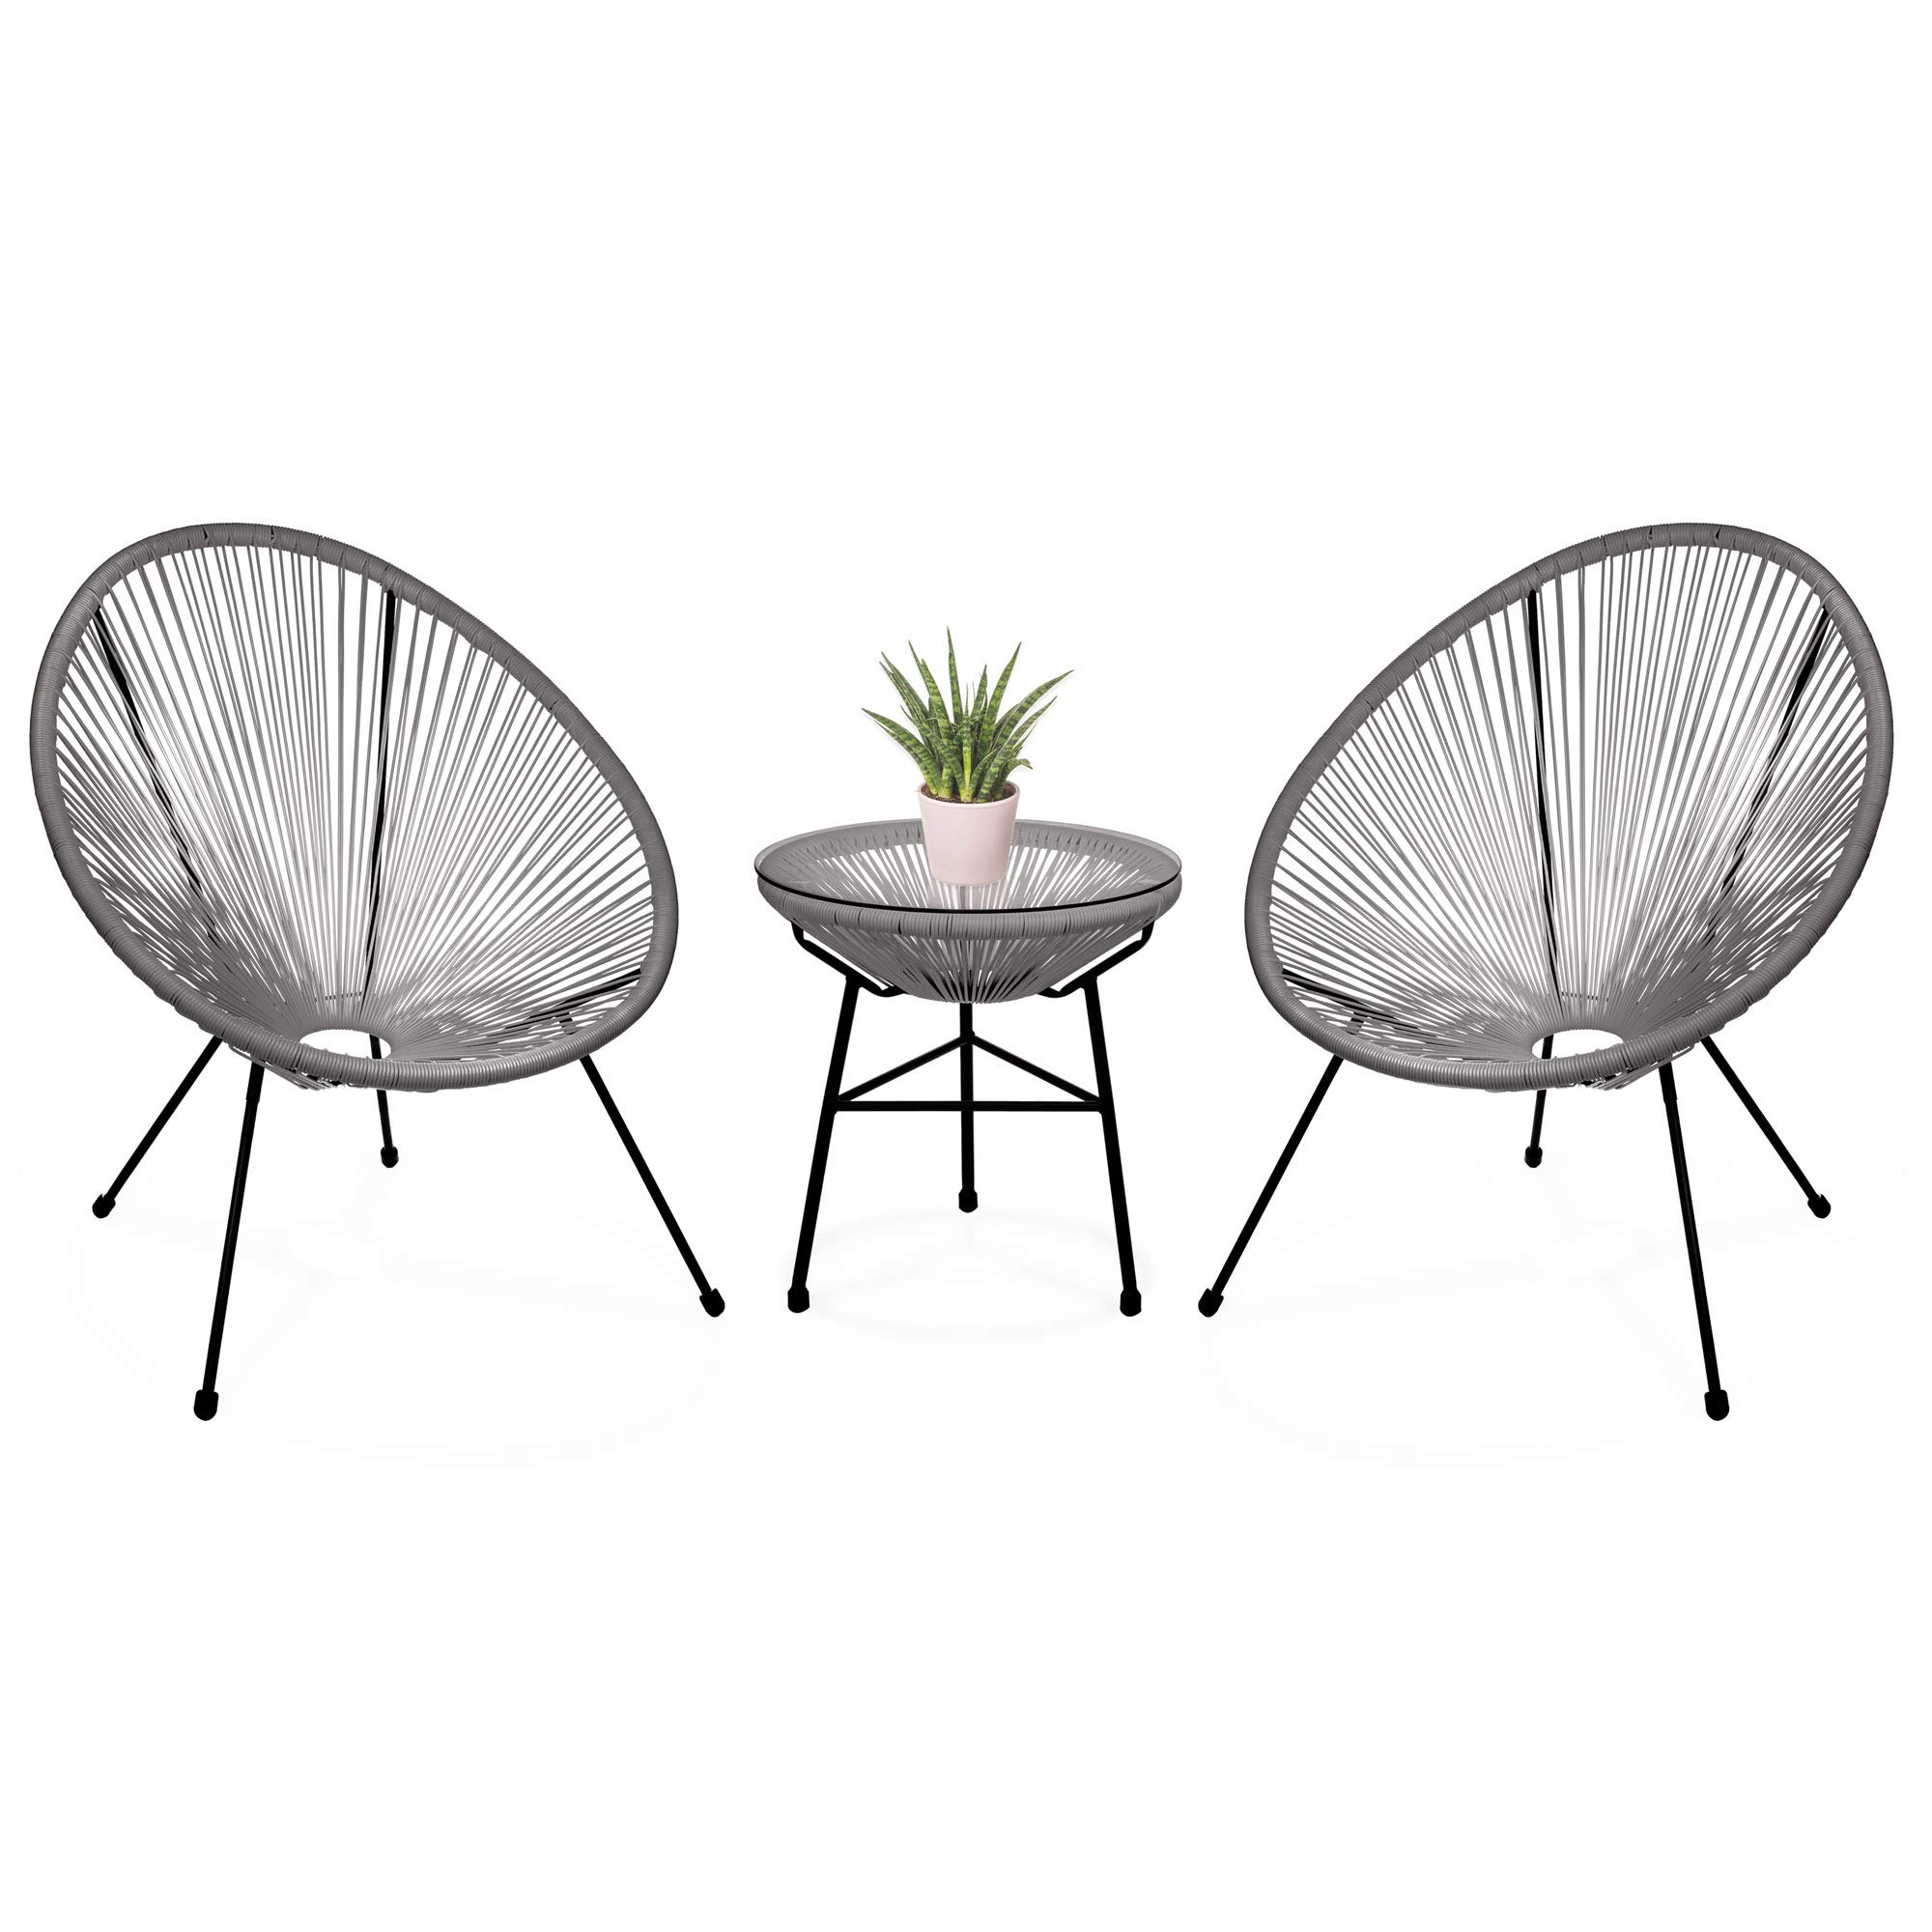 Best Choice Products 3-Piece Patio Woven Rope Acapulco Conversation Bistro Furniture Set w/Glass Top Table - Gray